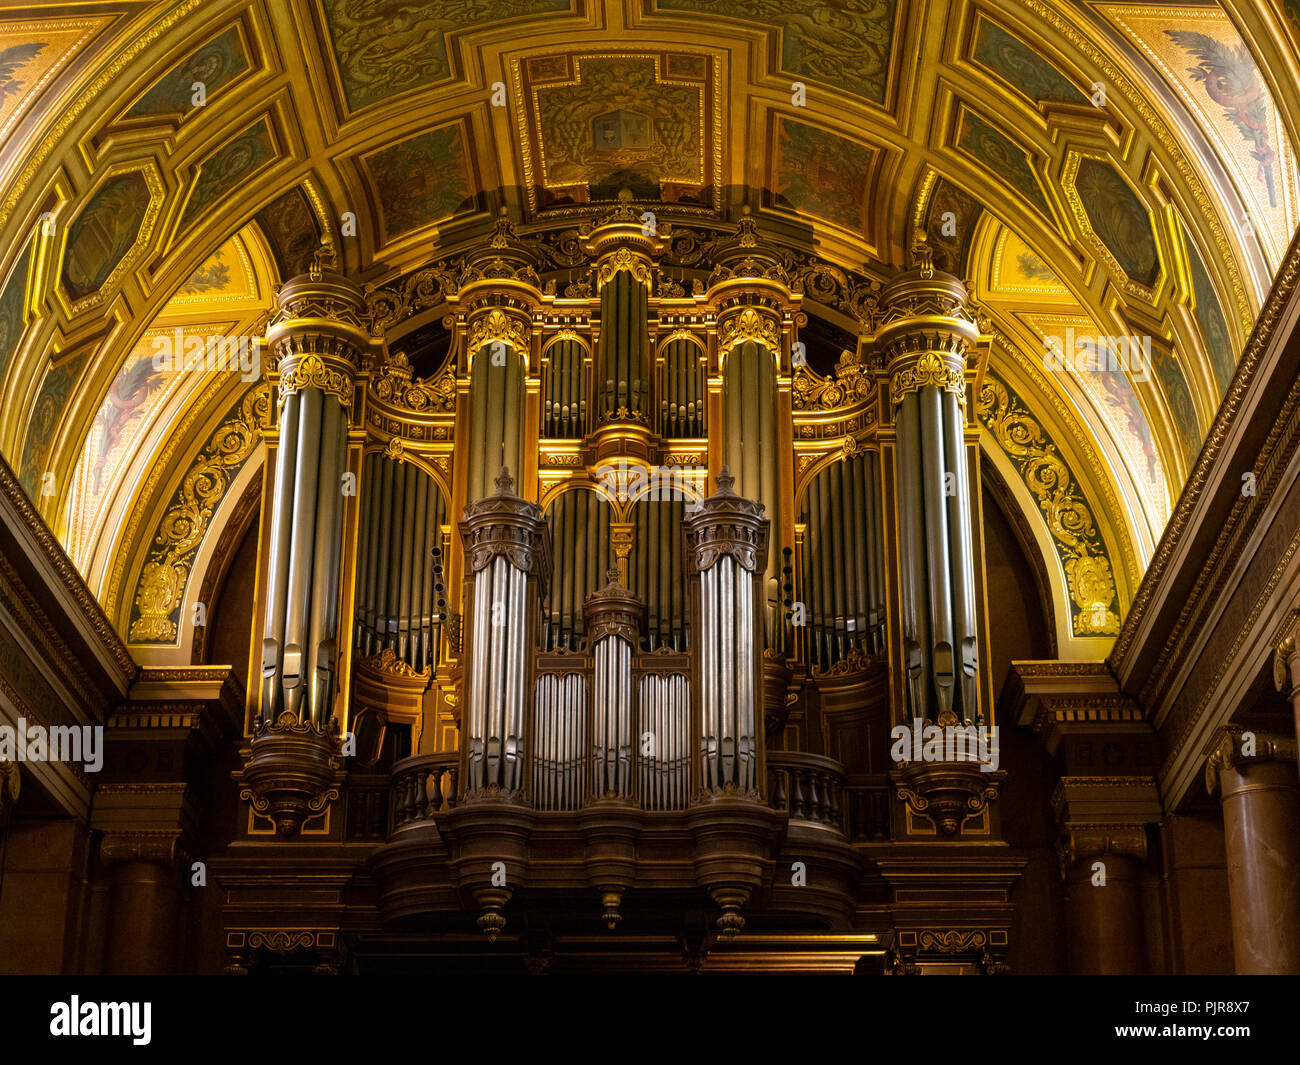 Great organs, cathedral Saint-Pierre of Rennes. - Stock Image